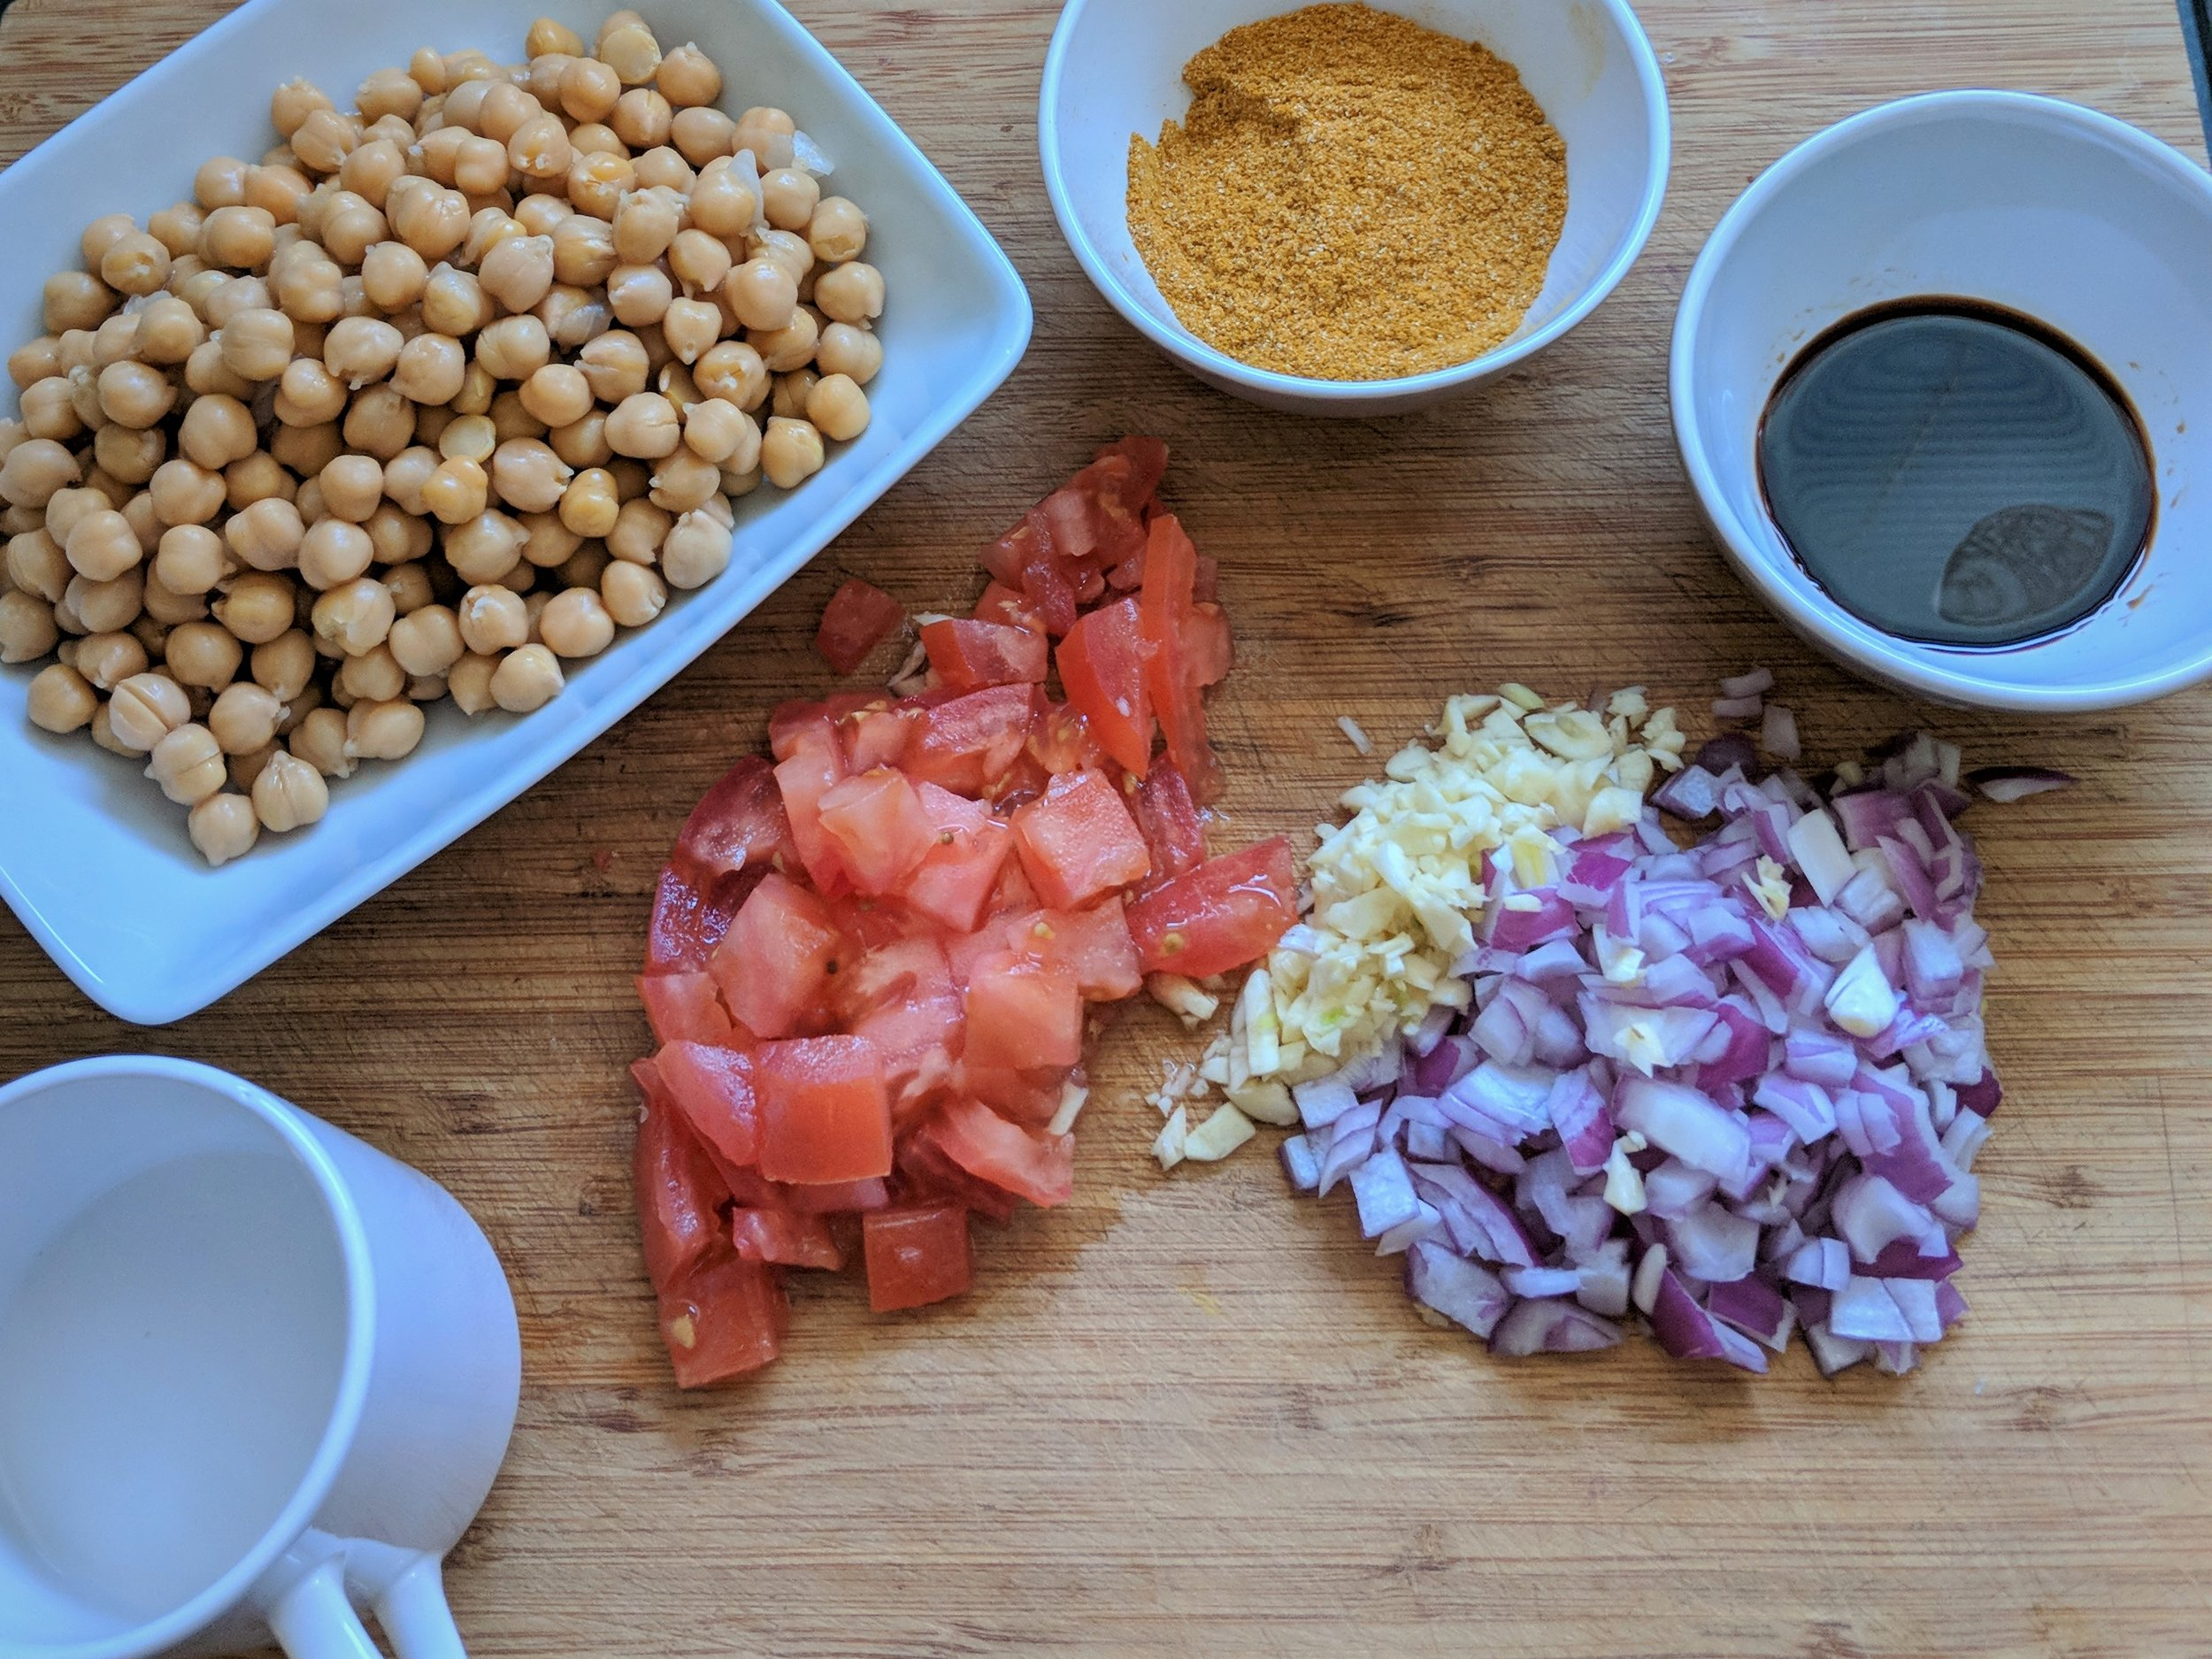 curry chickpeas ingredients